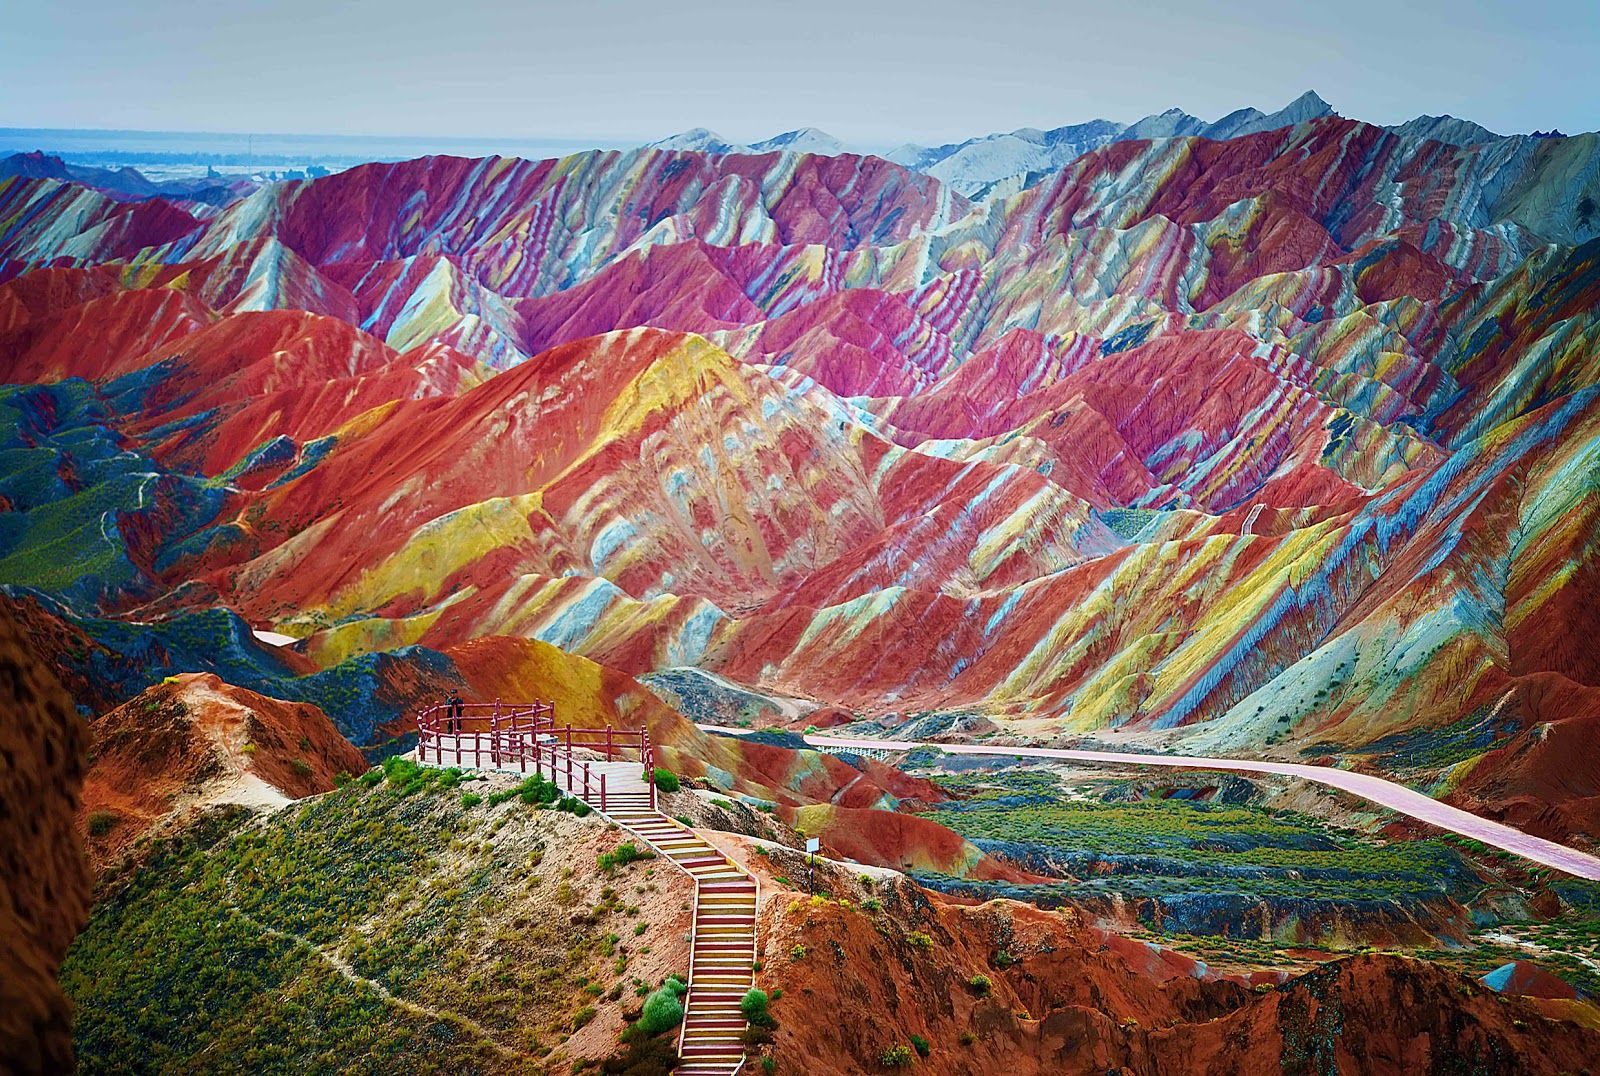 Exquisite Top 10 Beautiful Places Around The World Slideshow Made